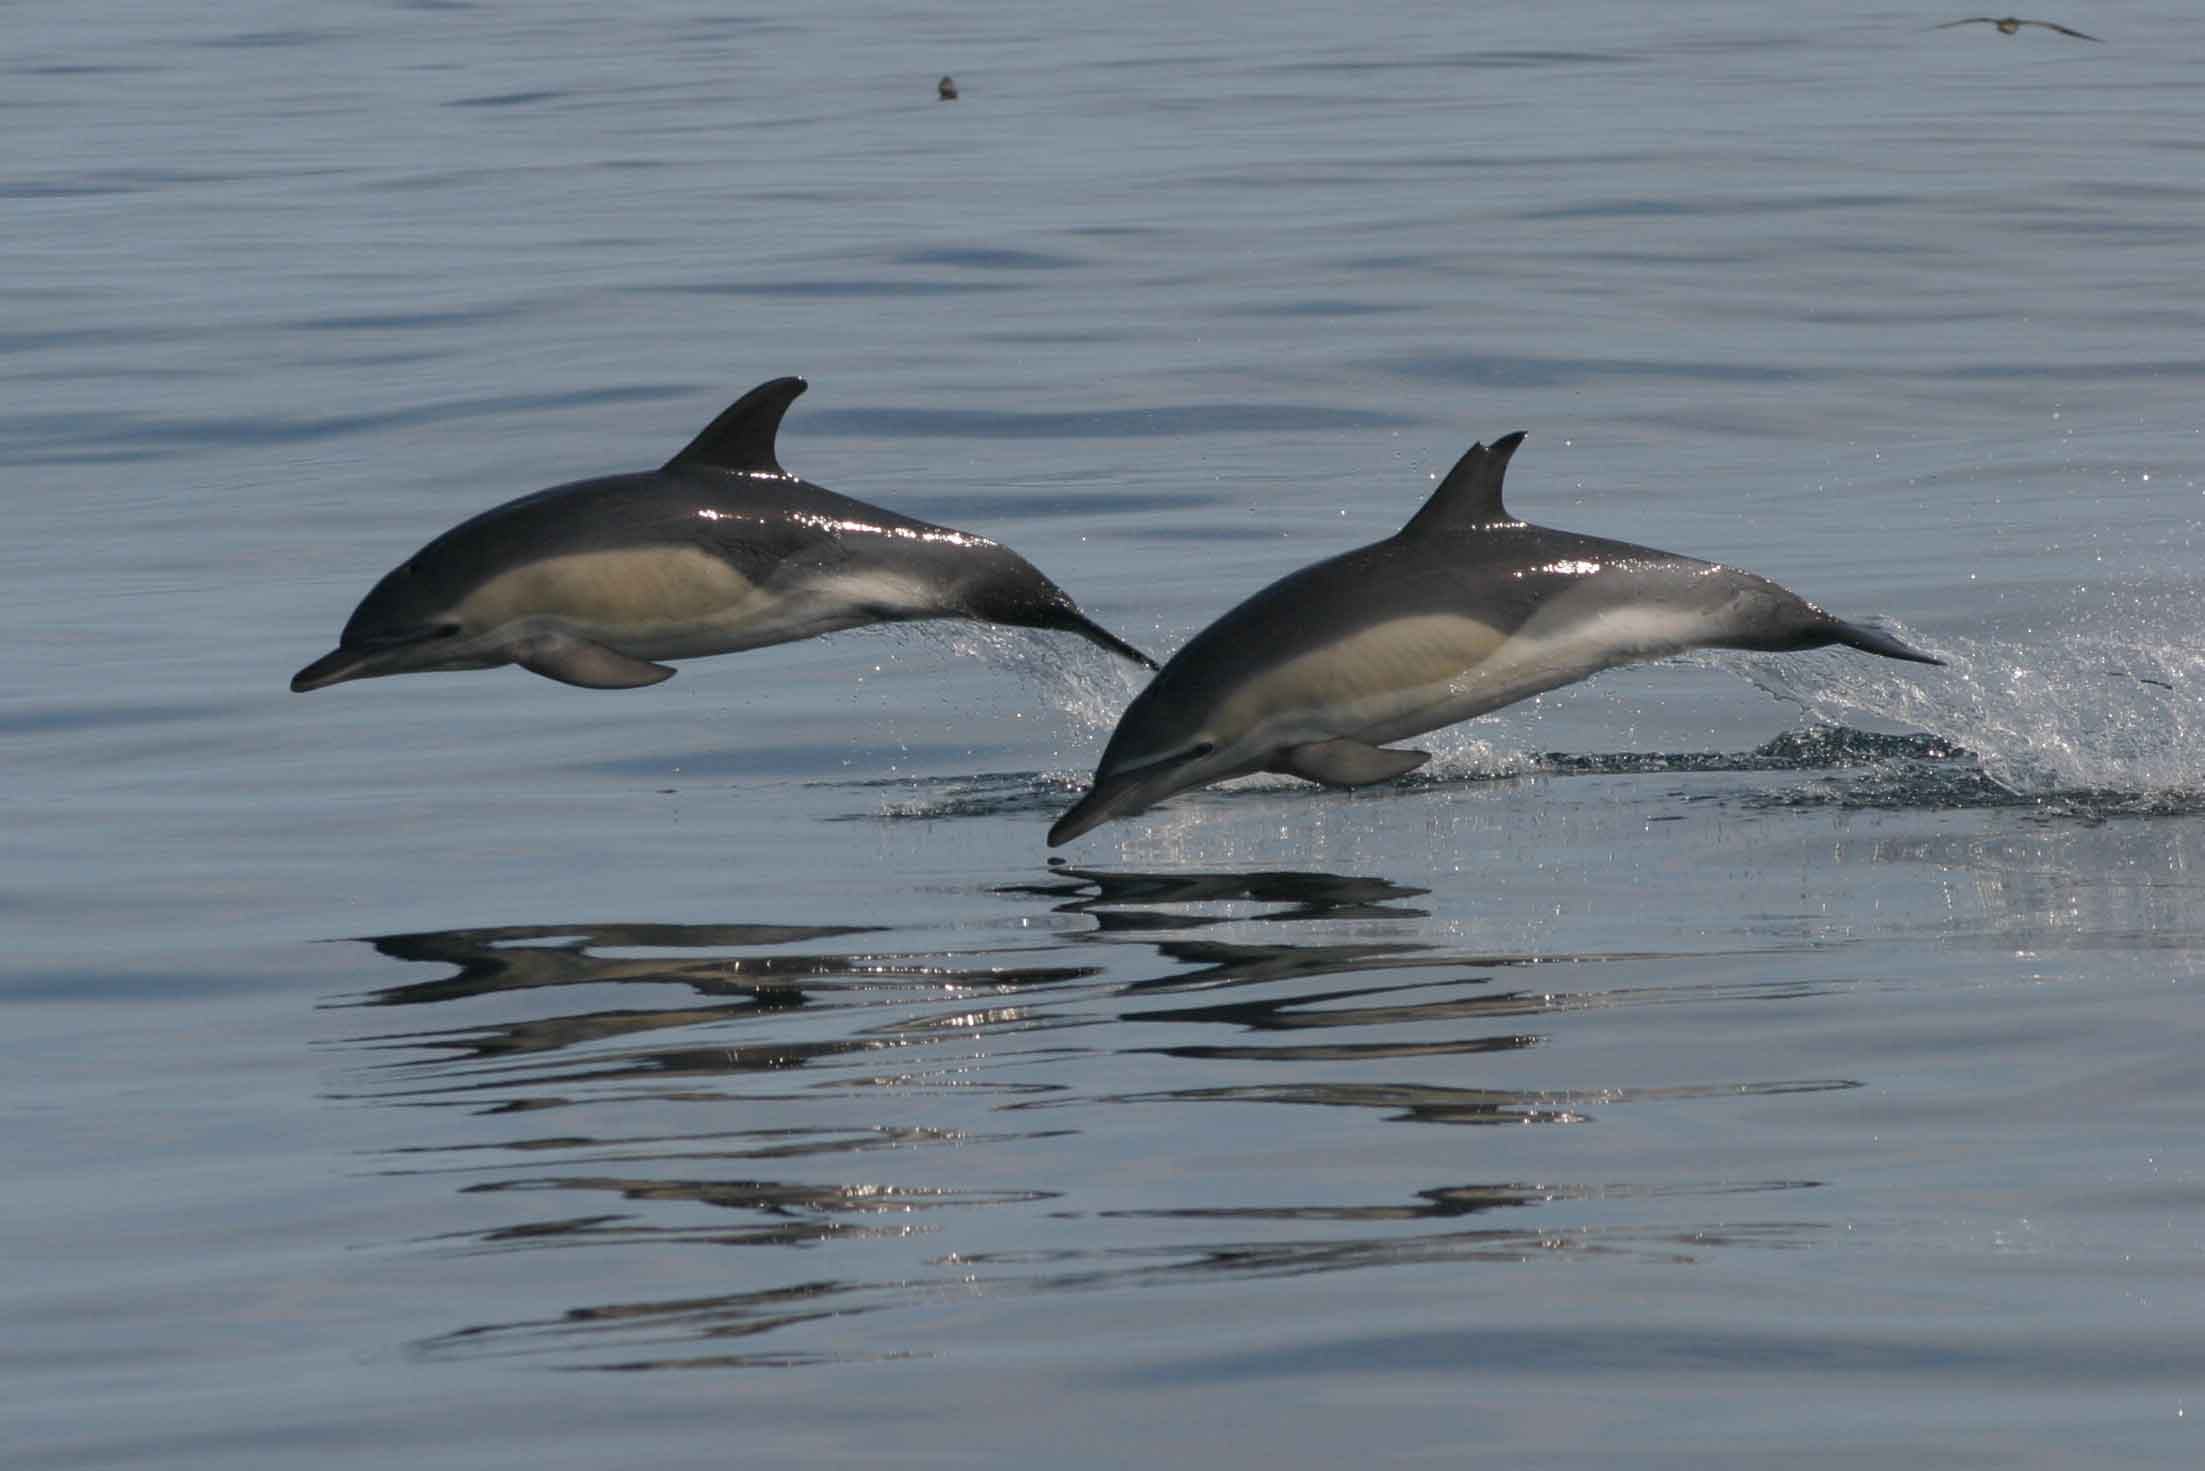 Two dolphins jumping out of the water. Photo Credit: Hilary Moors-Murphy